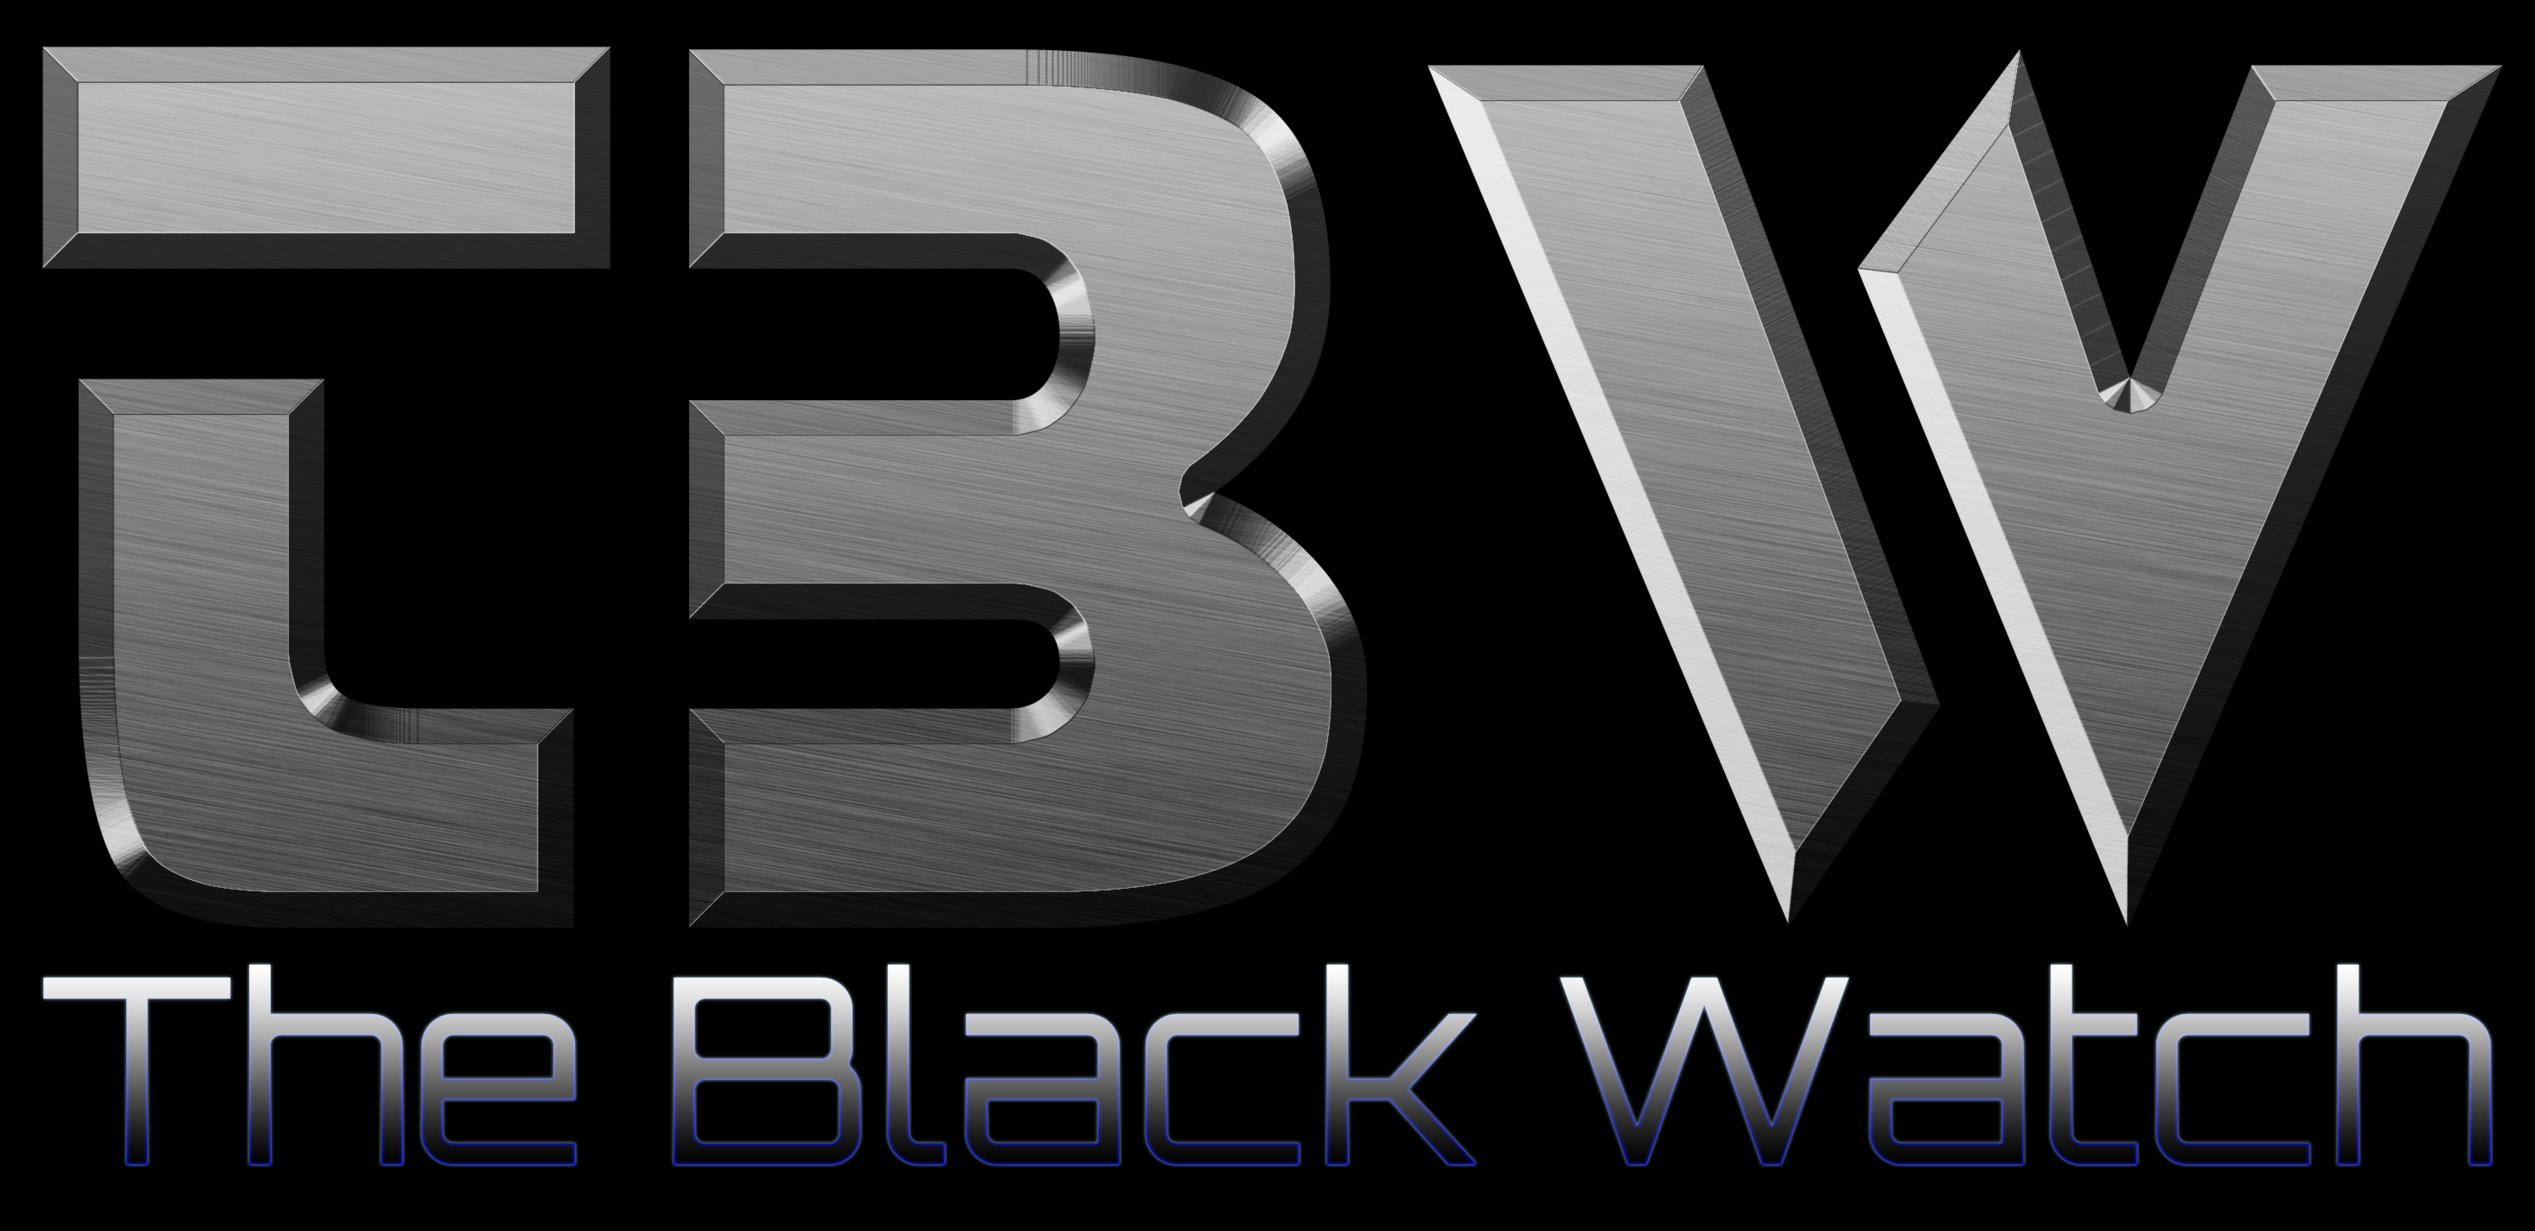 The Black Watch | Recruiting for Planetside 2/Guild Wars 2